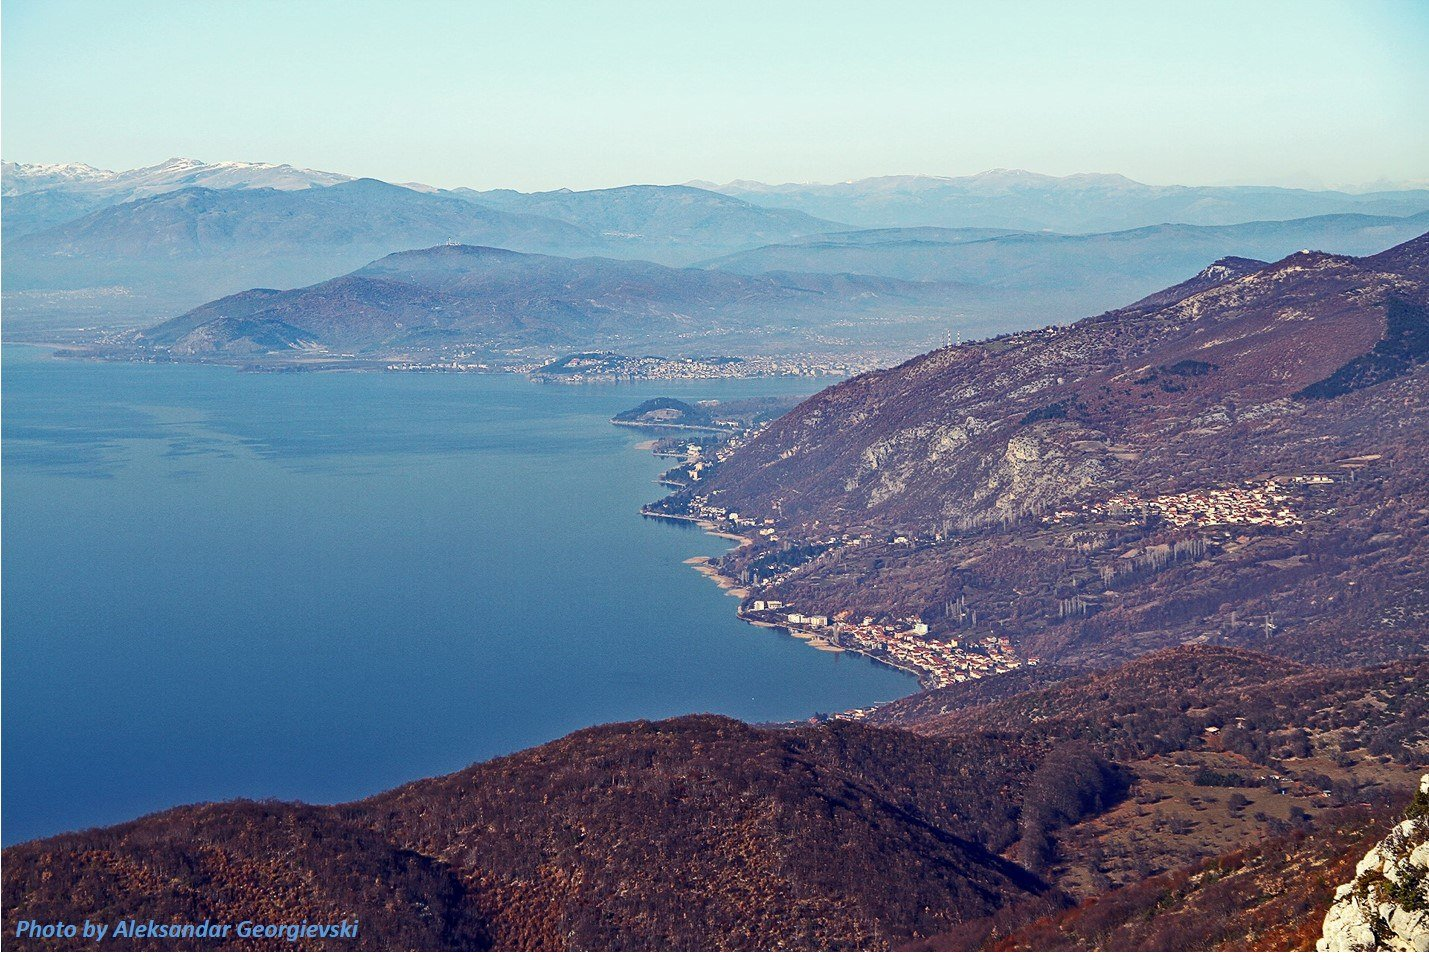 "New @IUCN 2017 report says #Macedonia at #Ohrid ""showing the lack of understanding of the meaning of World Heritage protection and appreciation for natural and cultural values this site possesses."" https://t.co/H4feemcqTJ"